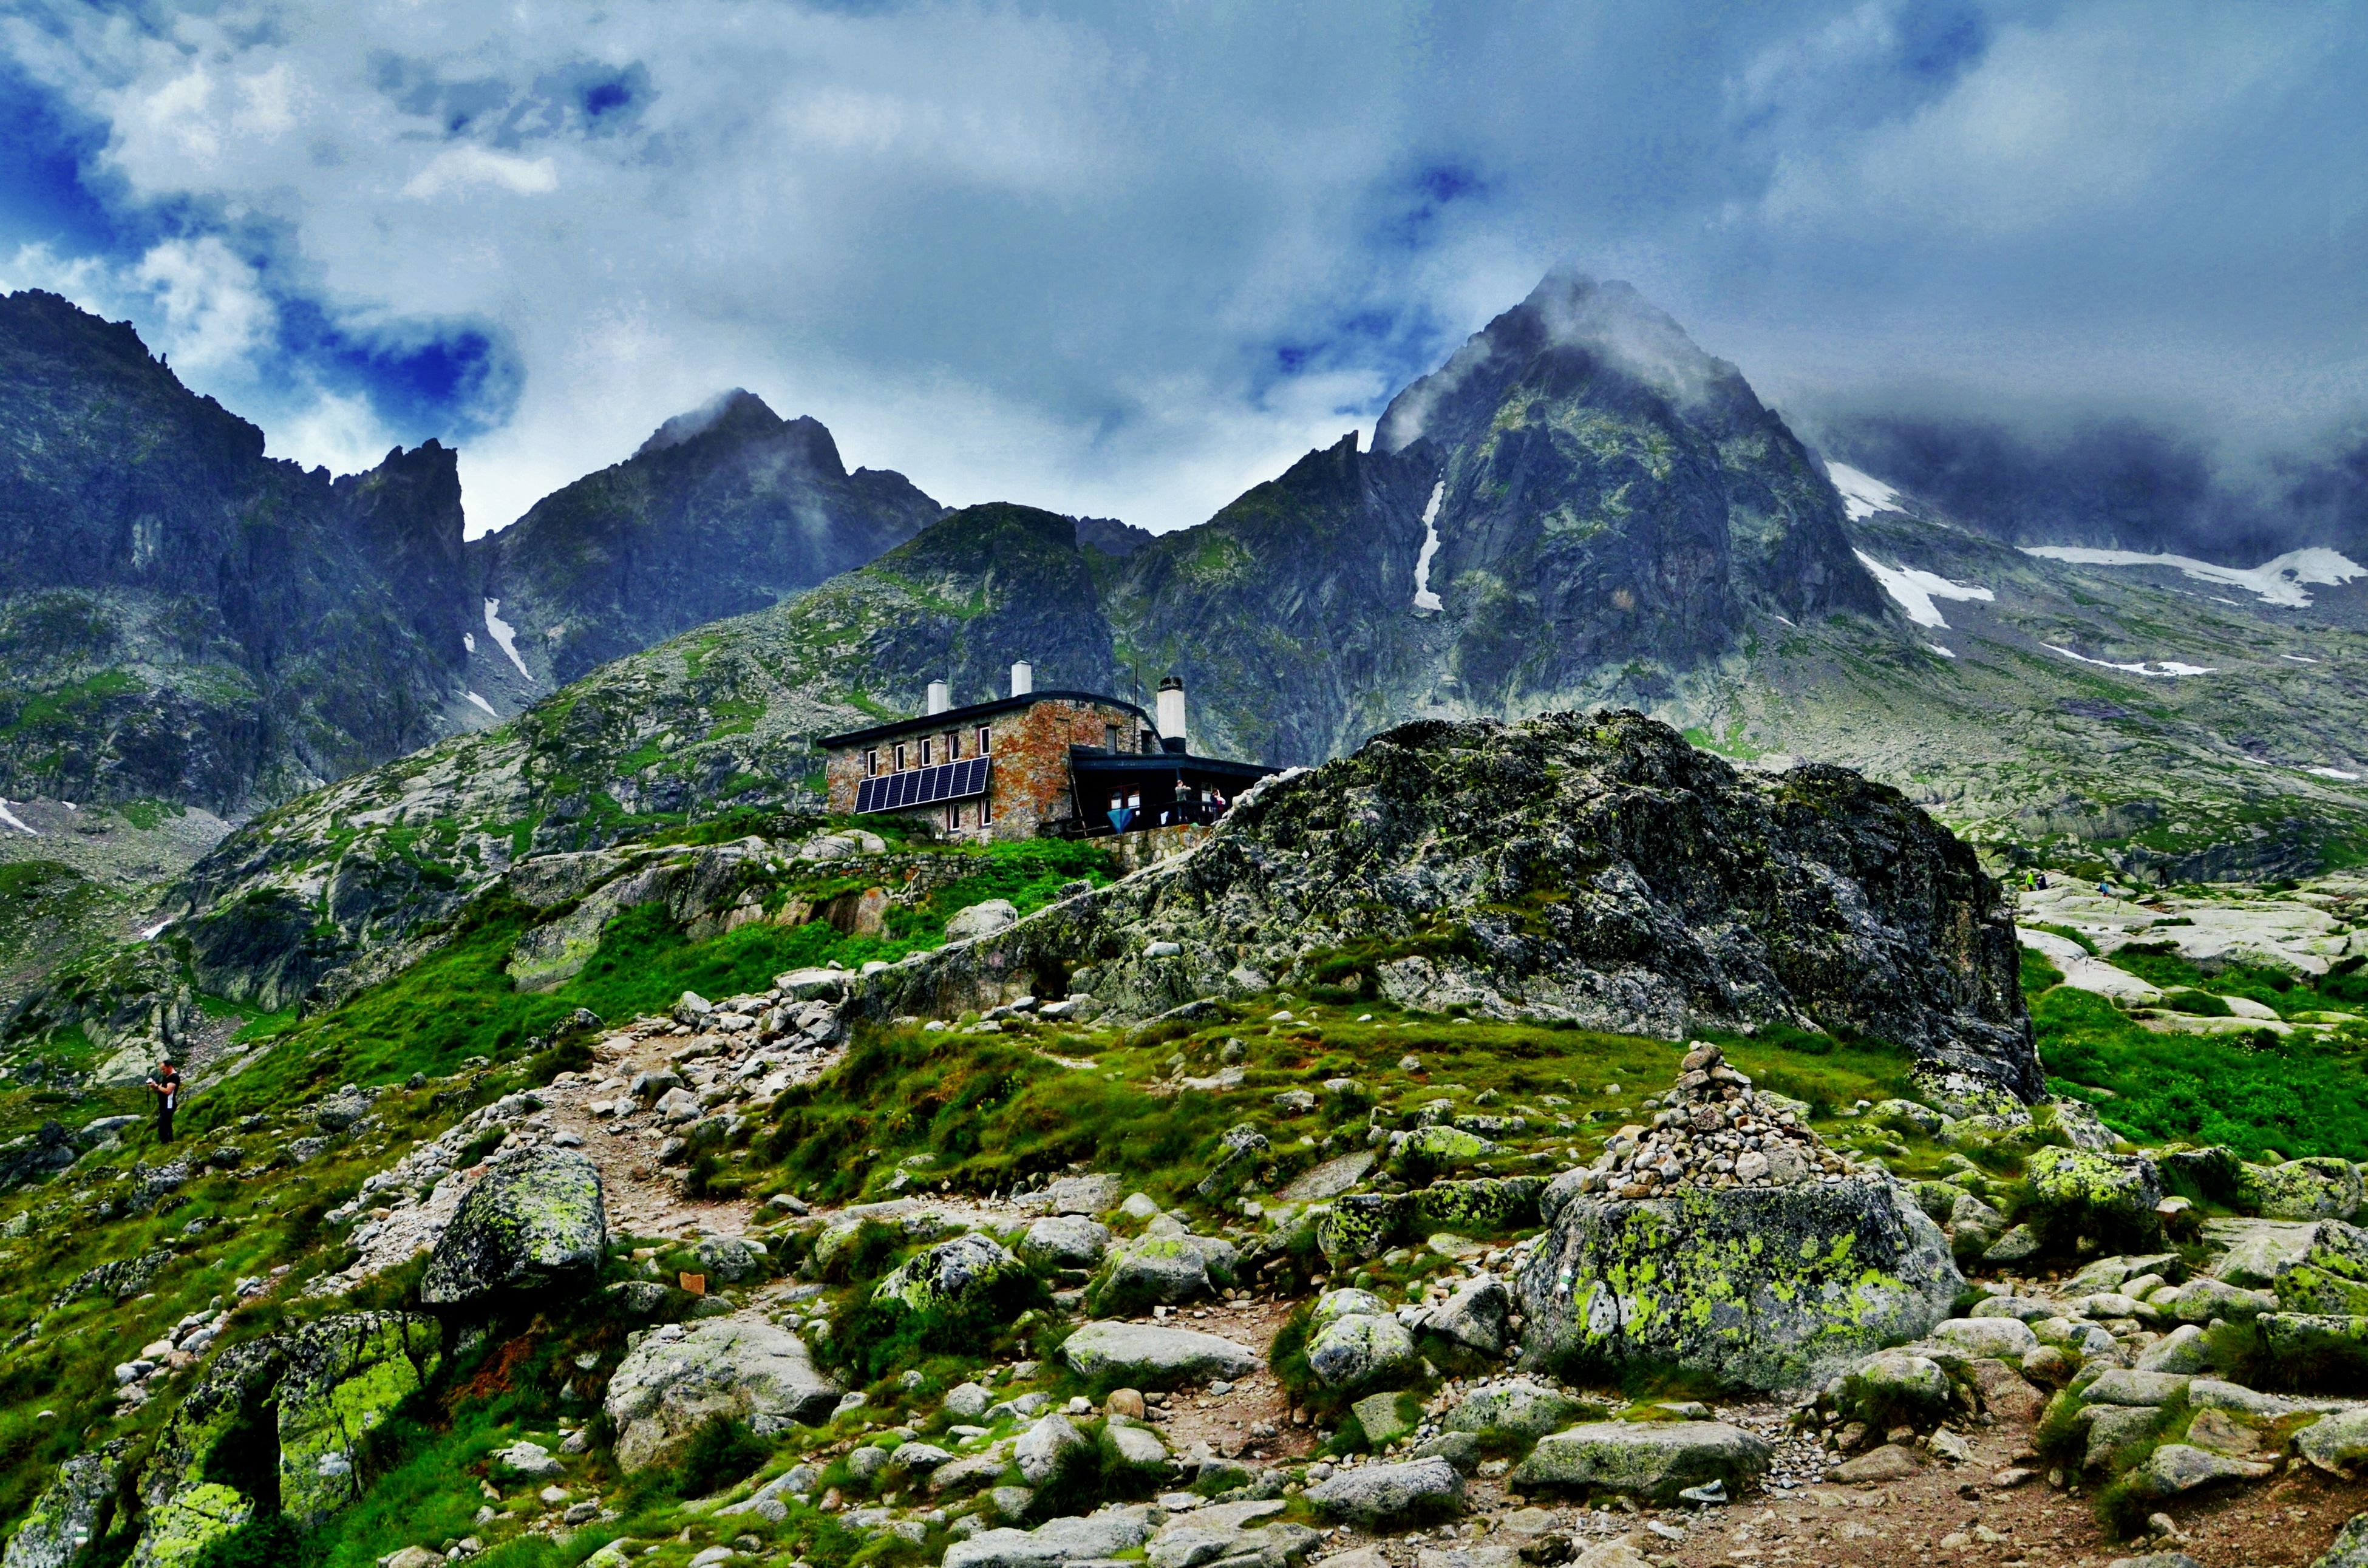 mountain, sky, architecture, built structure, mountain range, cloud - sky, building exterior, tranquil scene, tranquility, cloud, scenics, cloudy, landscape, nature, beauty in nature, house, rock - object, non-urban scene, day, green color